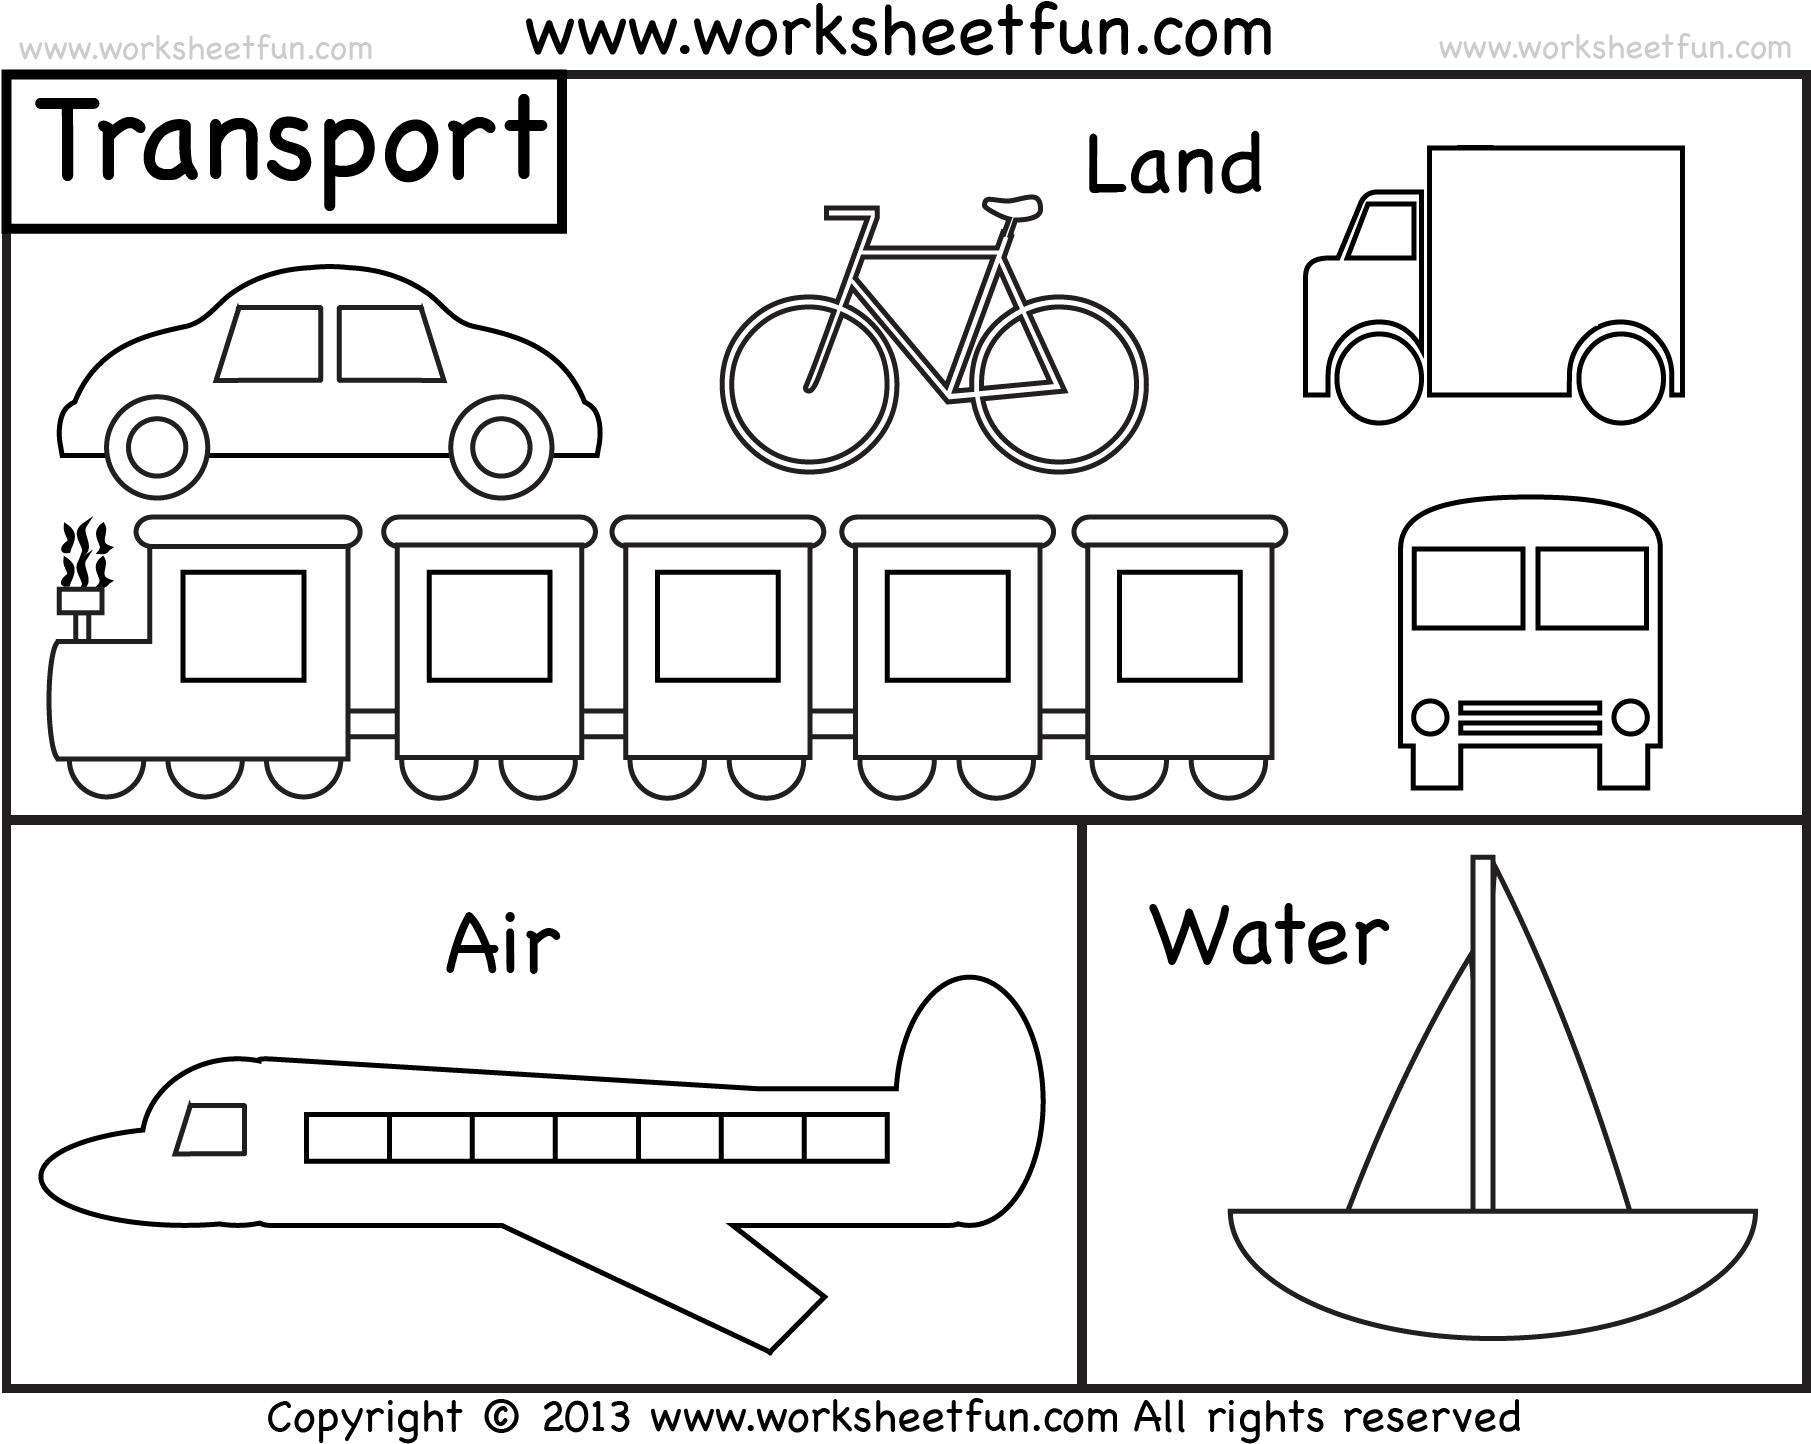 hight resolution of Download Transportation Clipart Different Transportation - Transport  Worksheet For Colouring - Full Size PNG Image - PNGkit